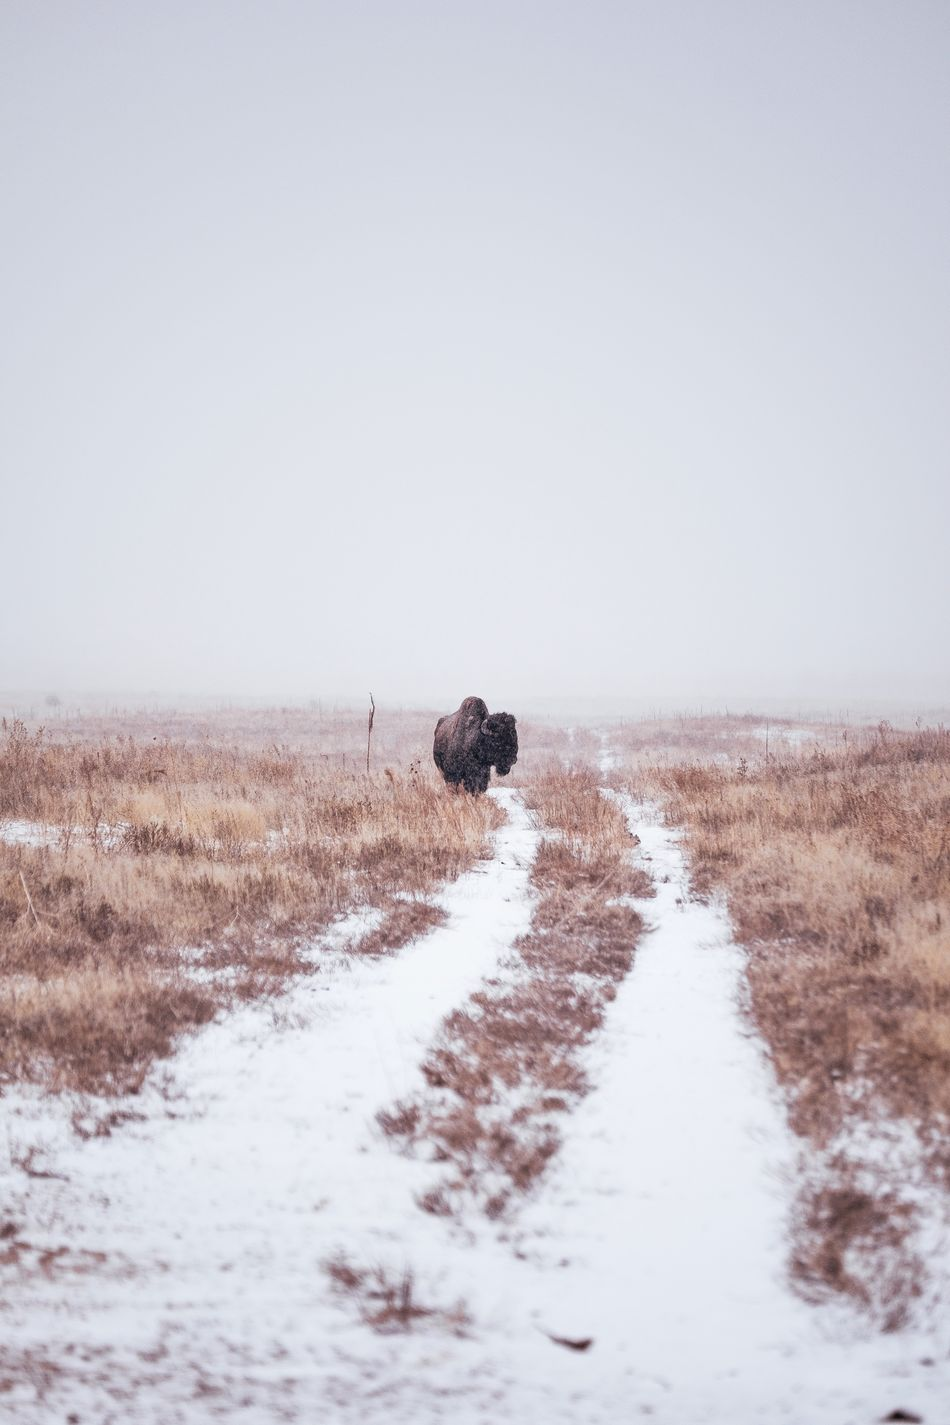 Bison Winter Nature No People Cold Temperature Snow Animal Themes Outdoors Animals In The Wild Tranquil Scene Scenics Moody Landscape Beauty In Nature Colorado Travel Destinations Wild Vista Adventure Winter Ice Freshness Bison